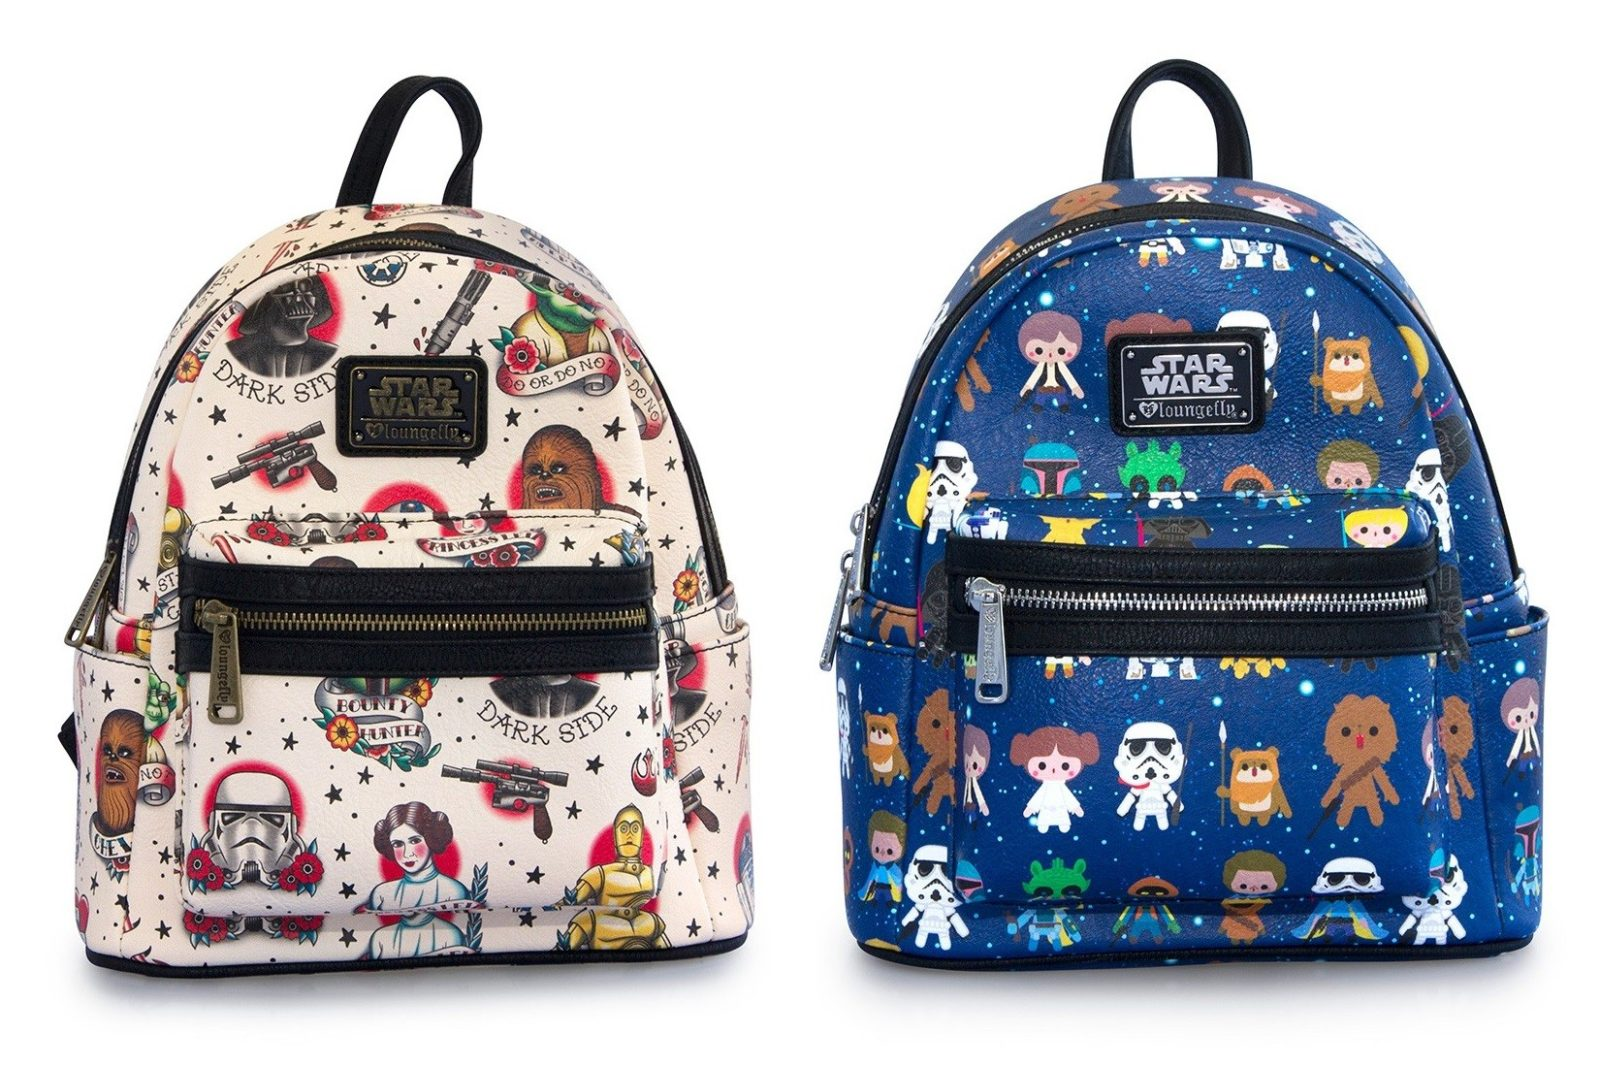 New Star Wars backpacks at Loungefly